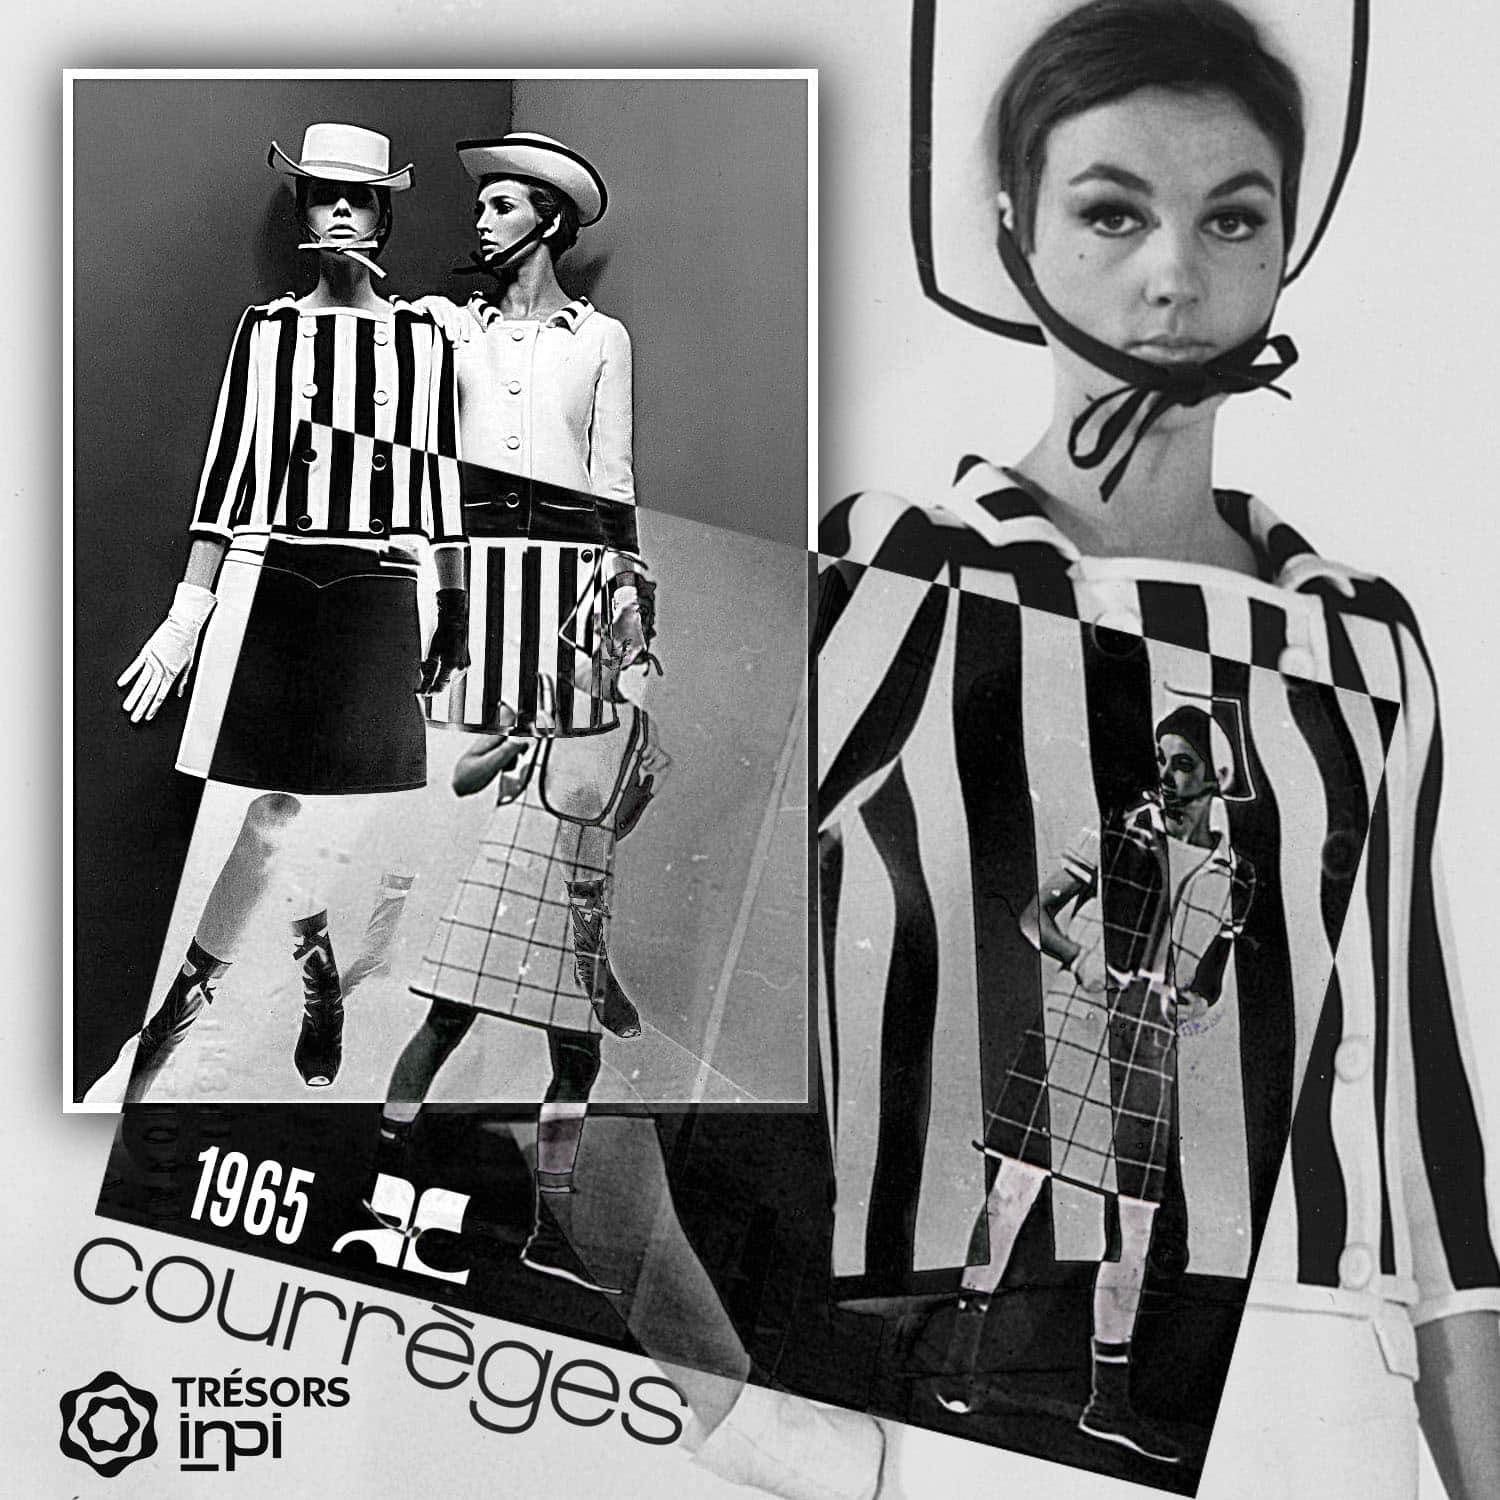 Andre Courrèges 1965 mini-skirt inventions - INPI archives